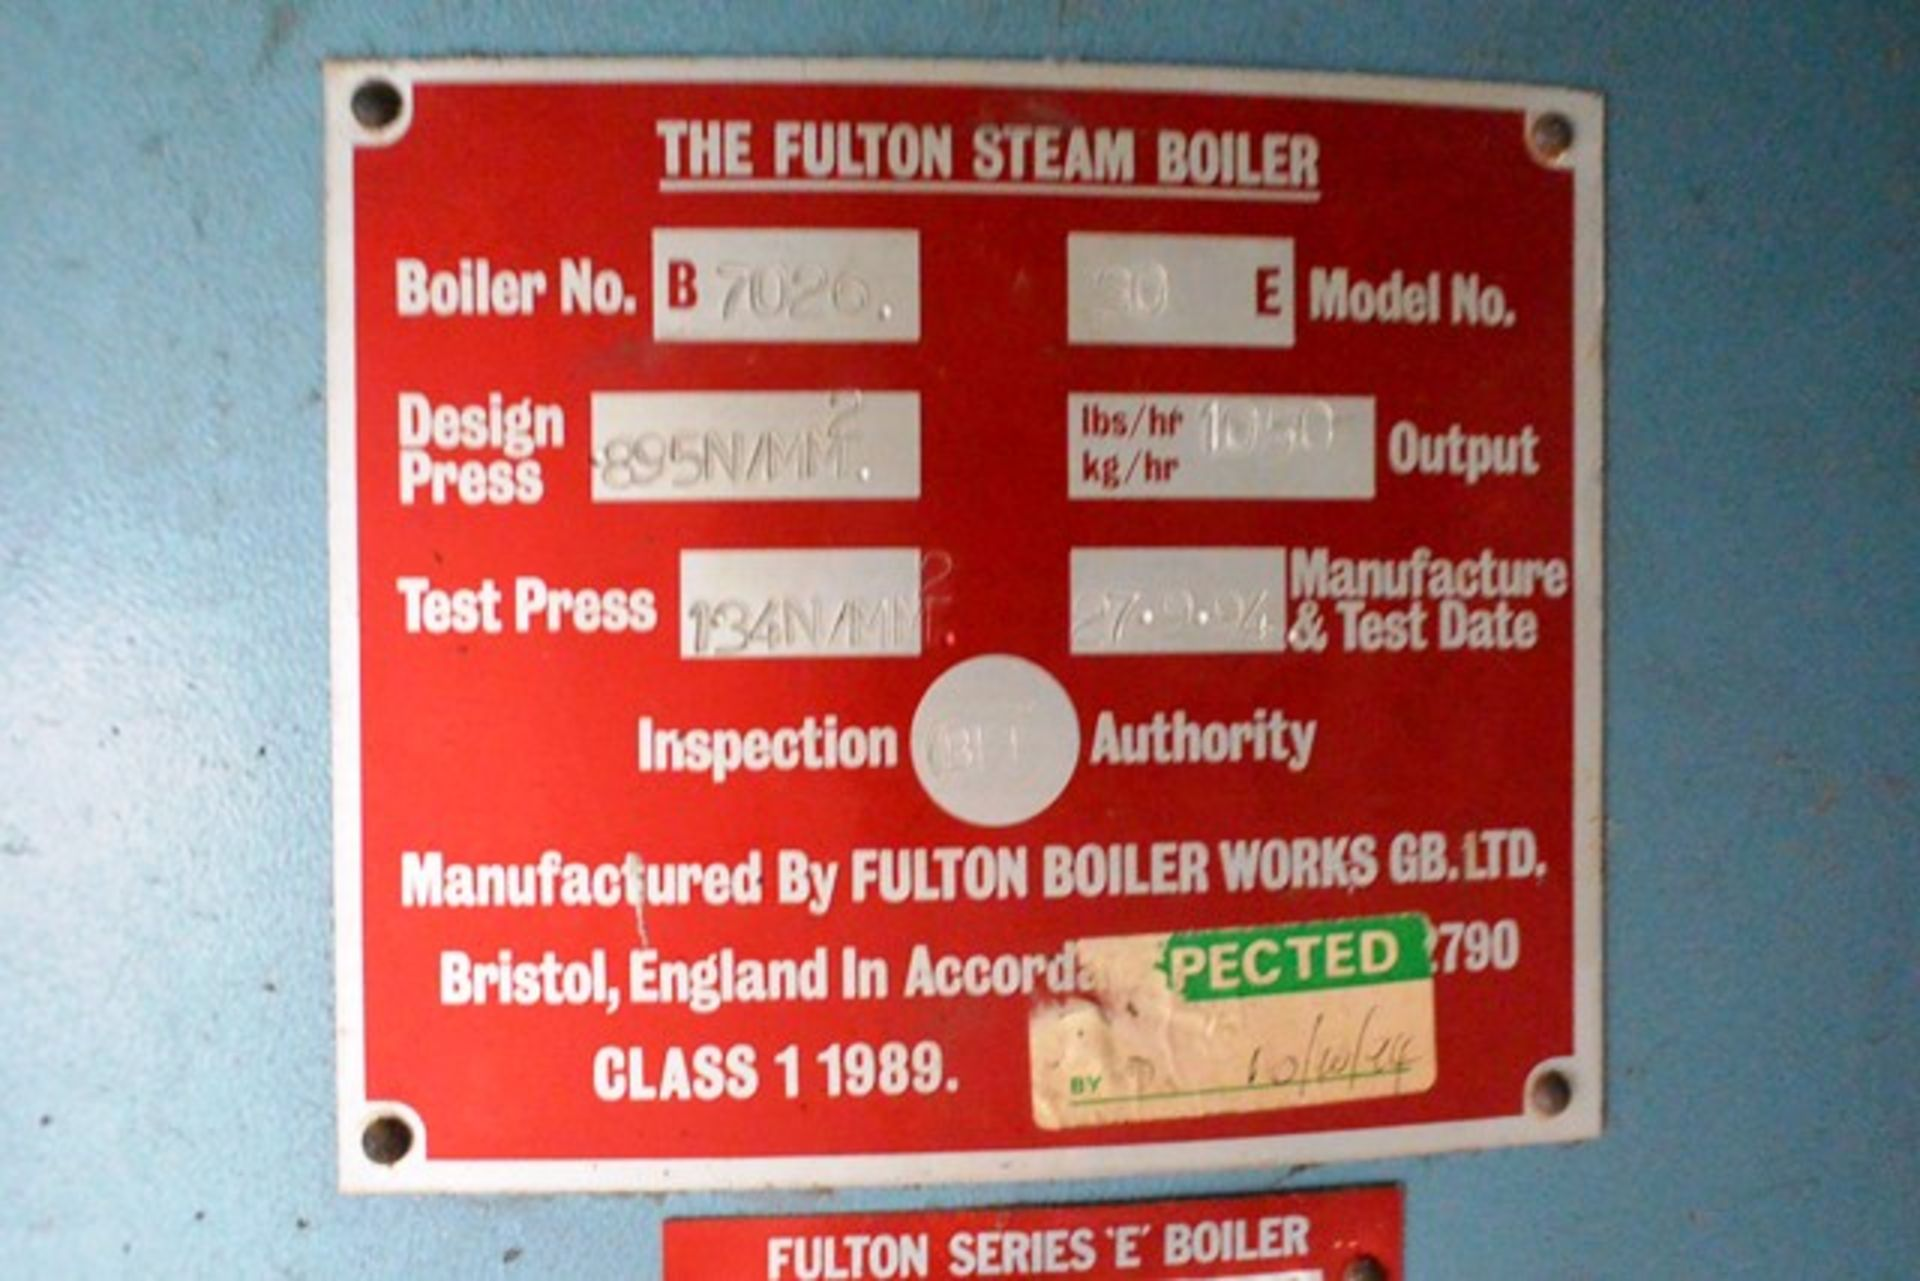 Fulton steam boiler, model 30E, serial no. B7026, design pressure 895 N/mm², test pressure /34N/ - Image 5 of 11